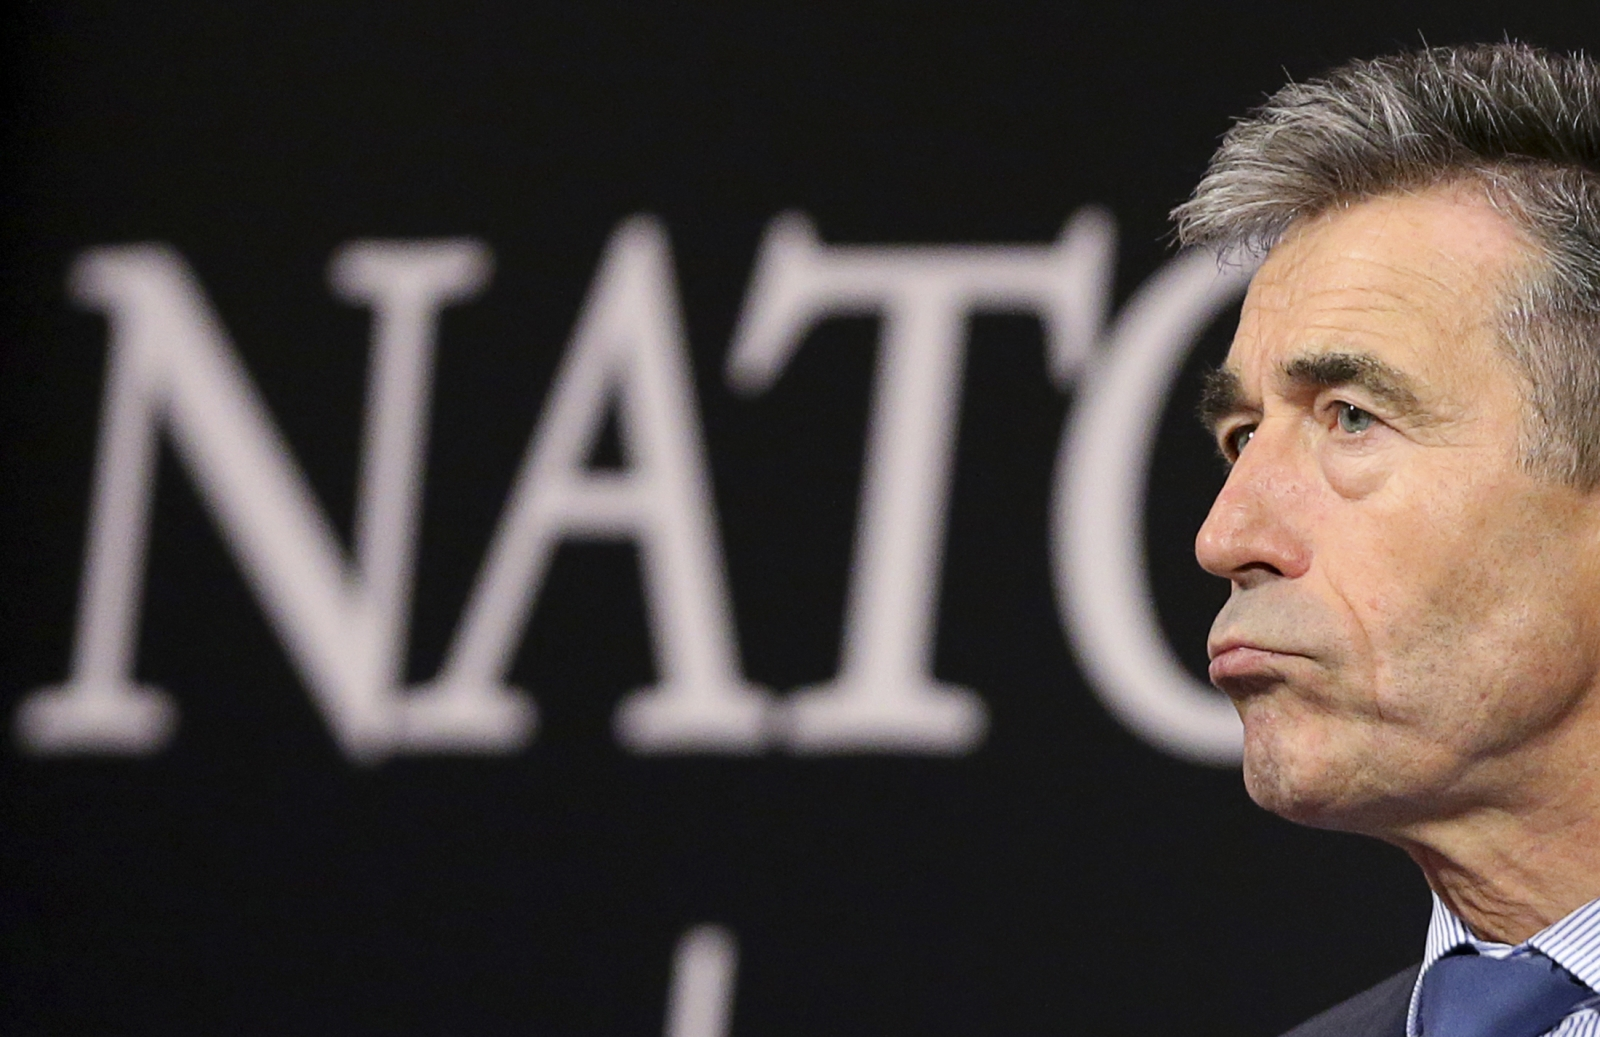 Nato Cyber-Security Challenges